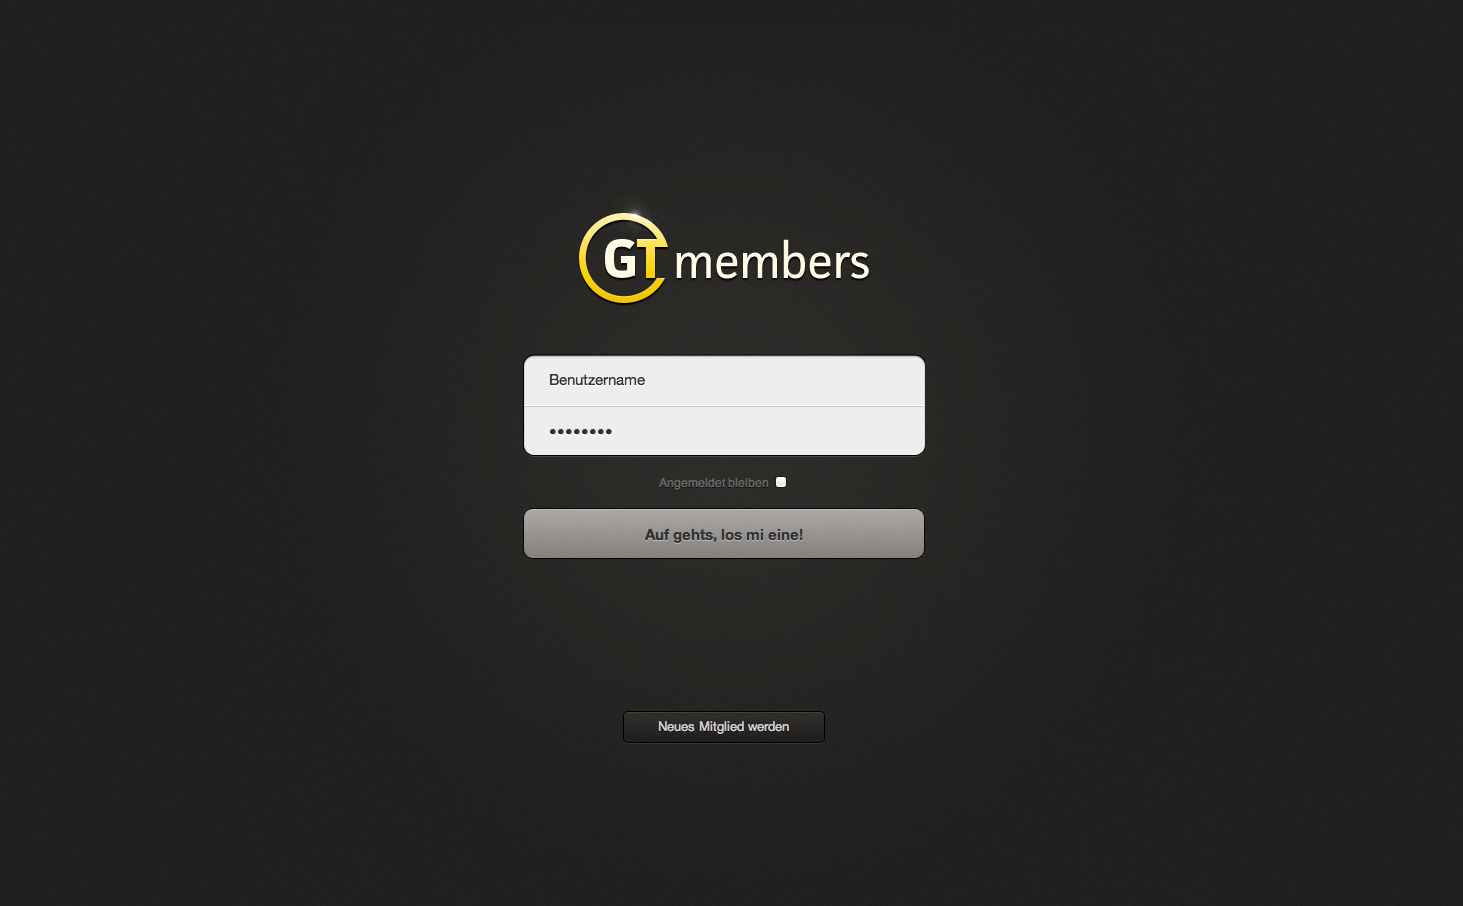 Dribbble 95 members logo fullscreen